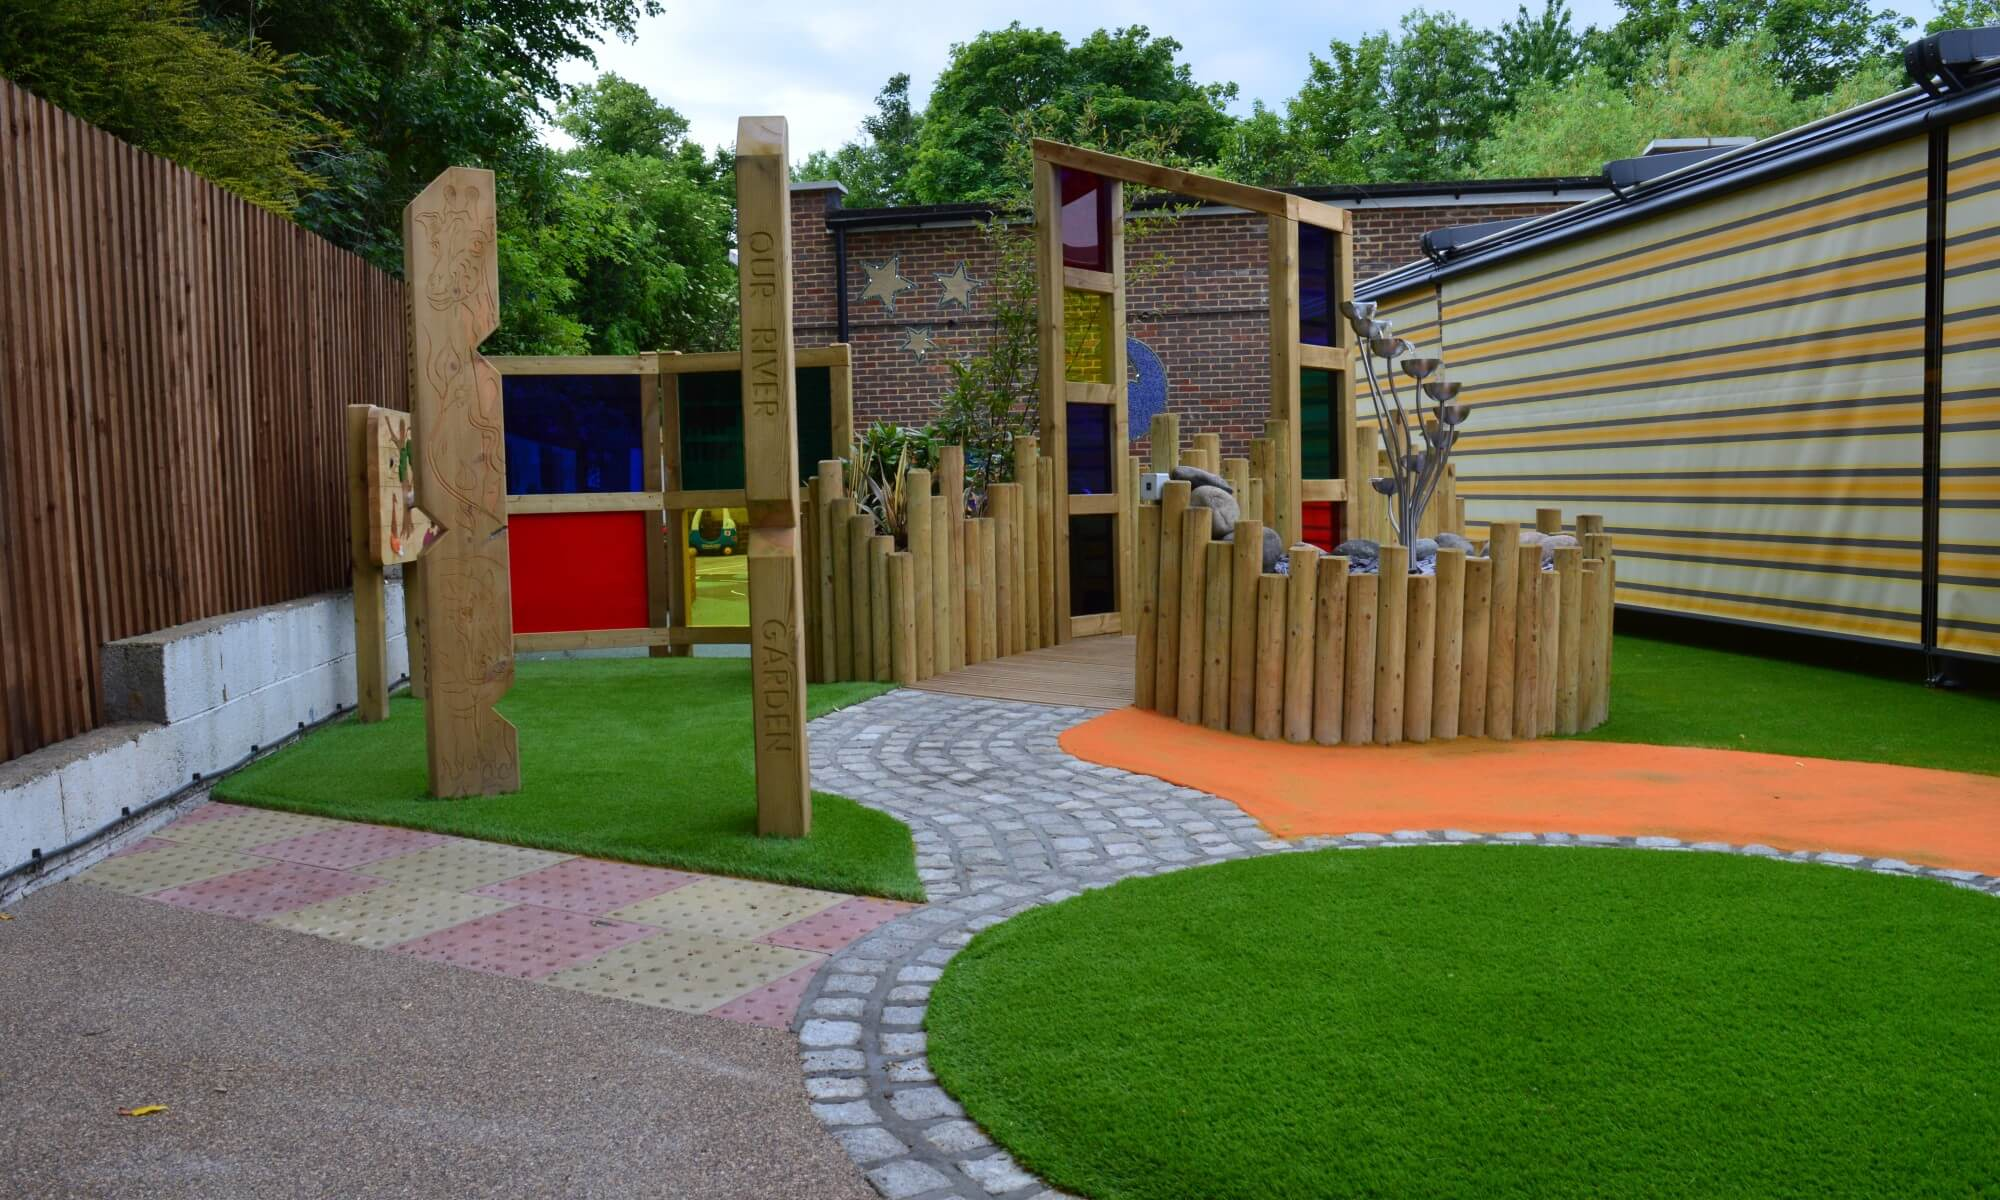 School Playground design & installation at Bedelsford School in Kingston, London | Playcubed Playgrounds